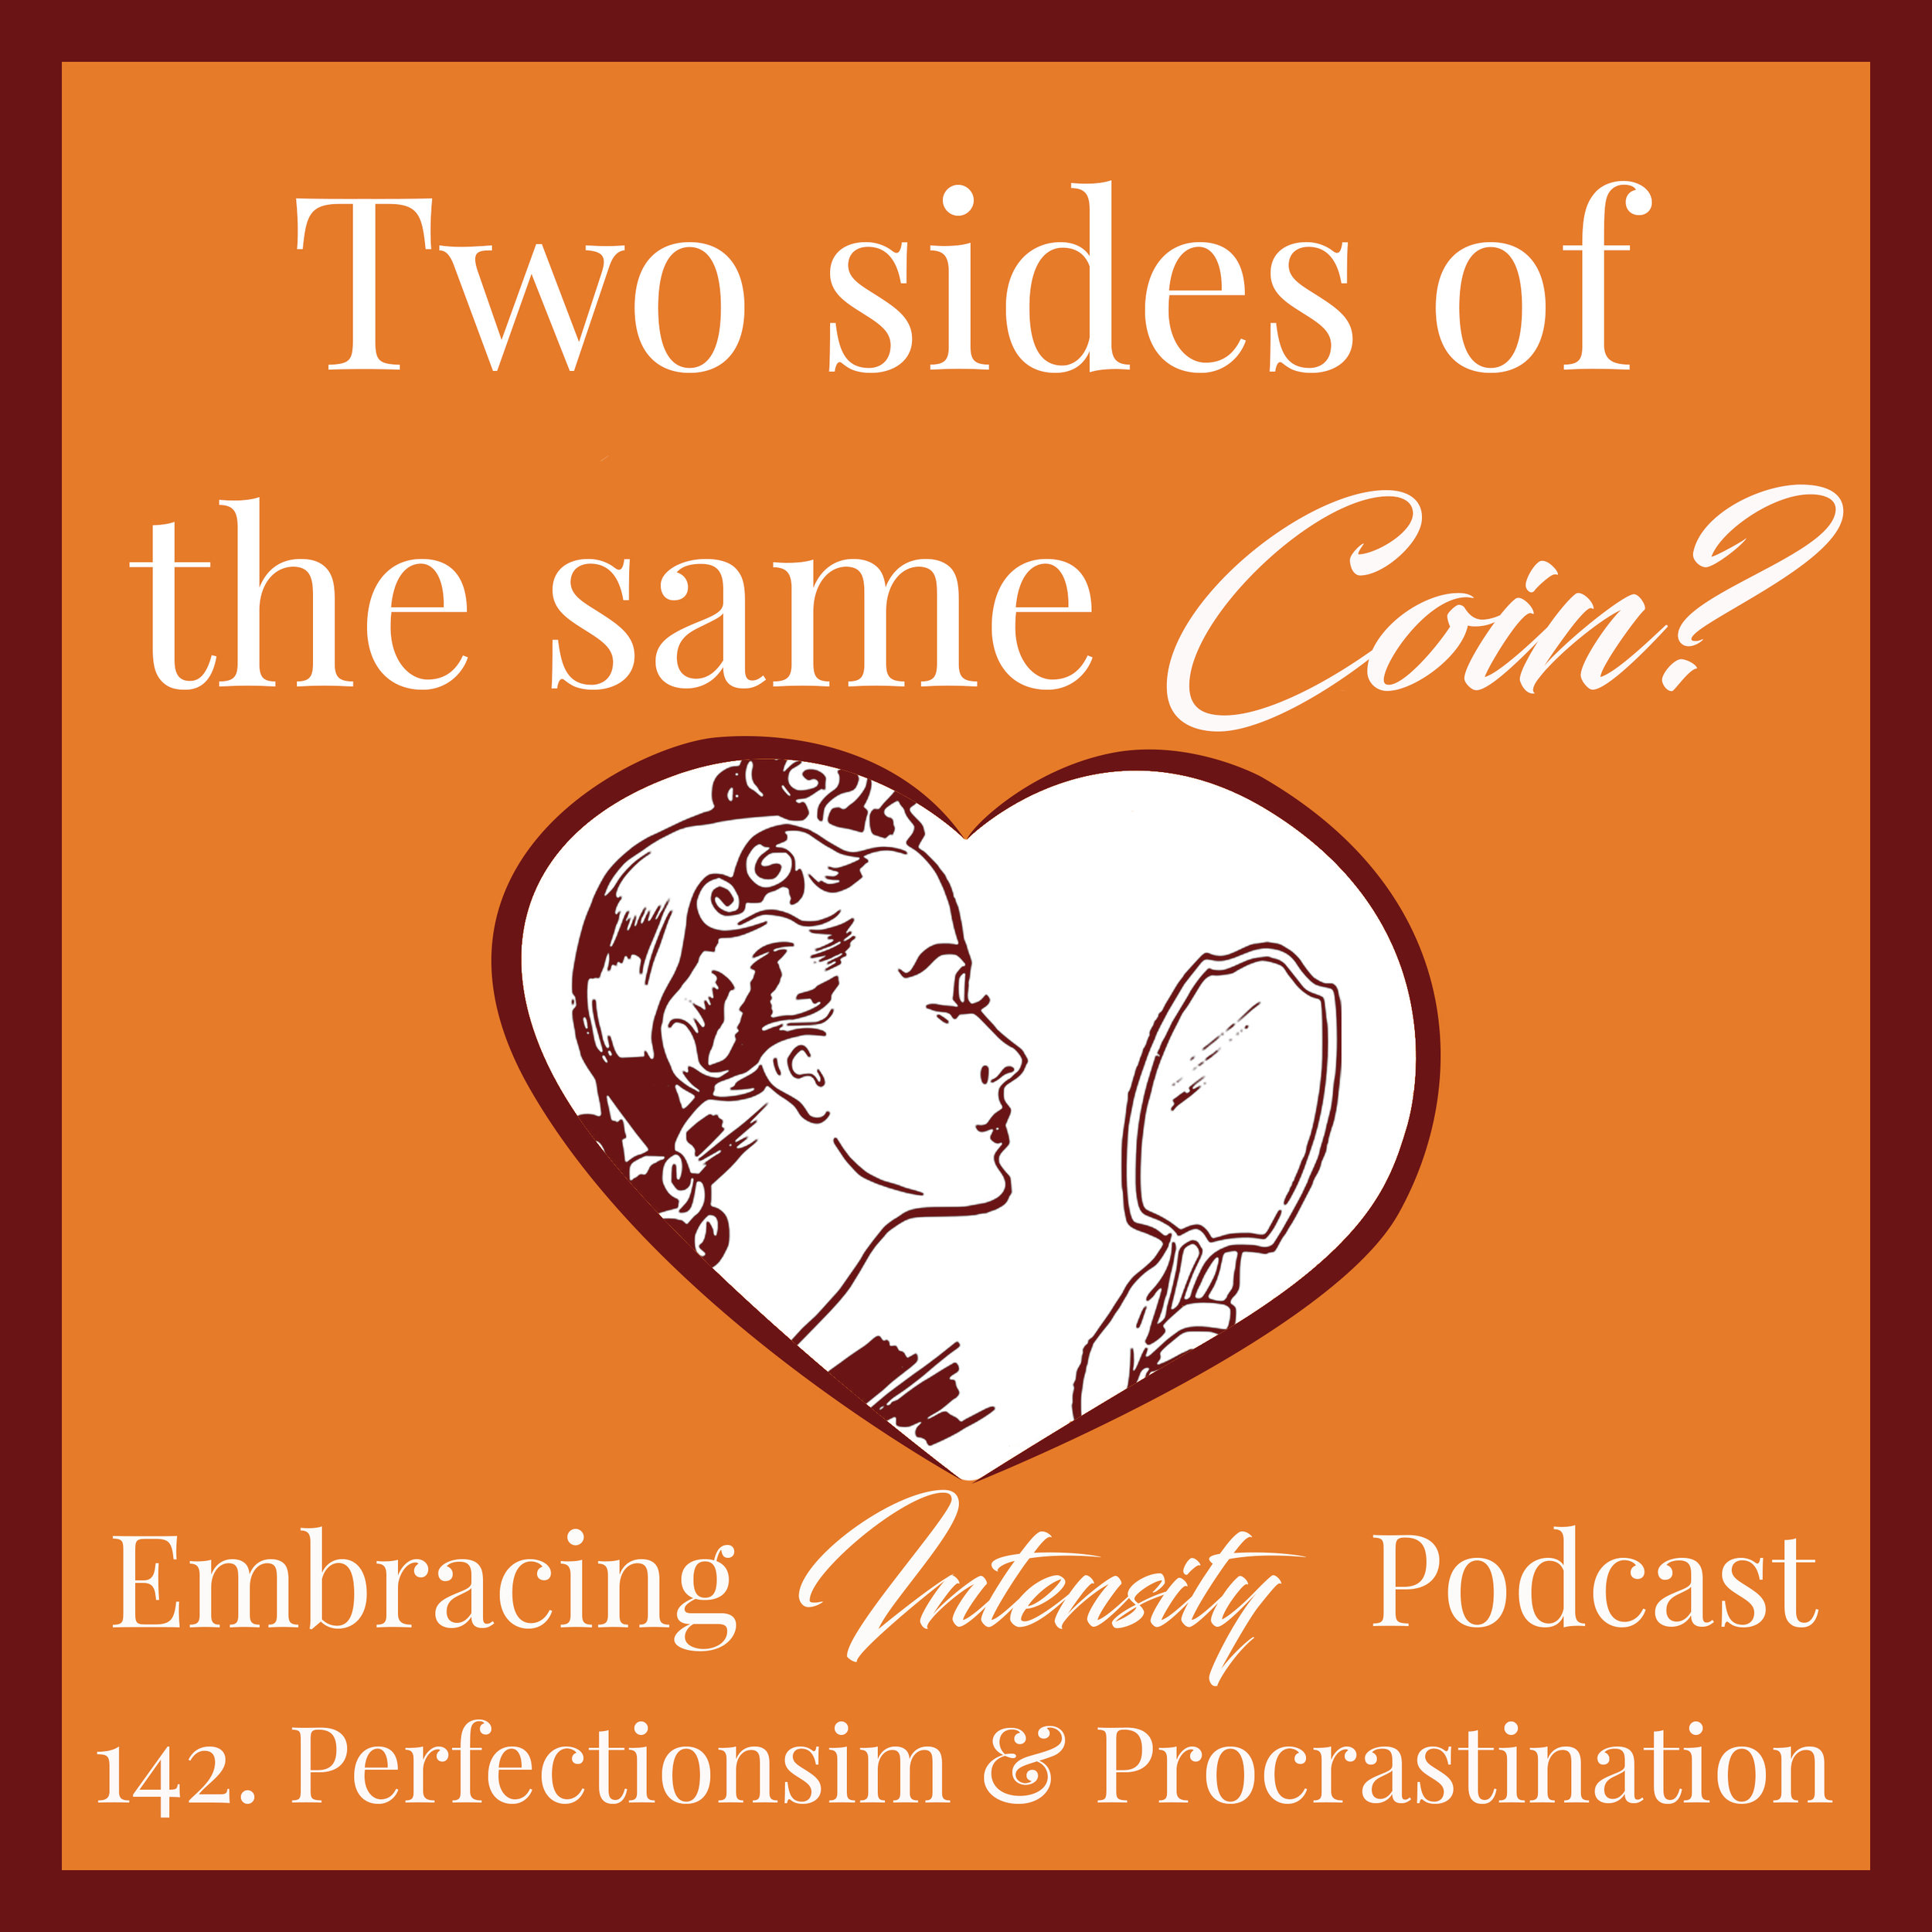 Perfectionism & Procrastination: Two sides of the same coin?